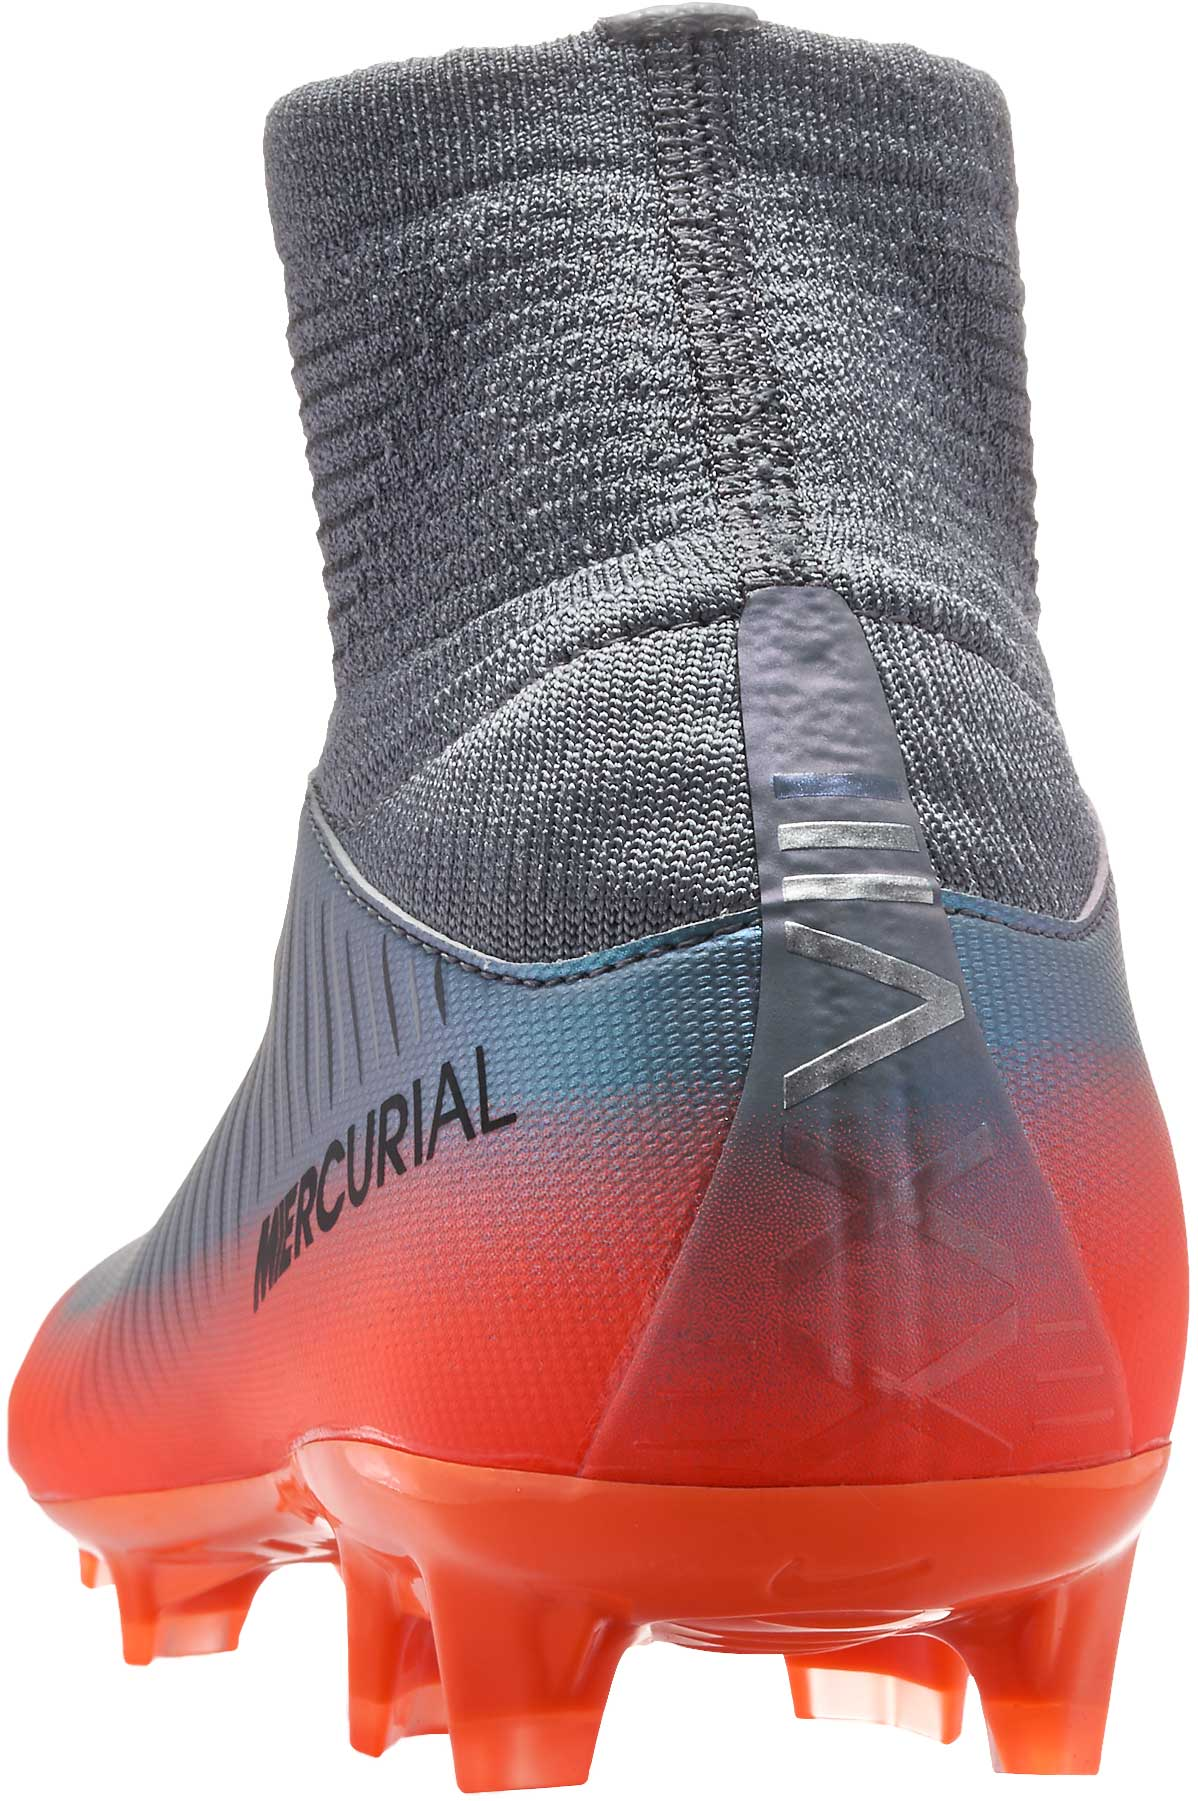 Nike Kids Mercurial Superfly V FG Soccer Cleats - CR7 - Cool Grey ... 5442d12e4a